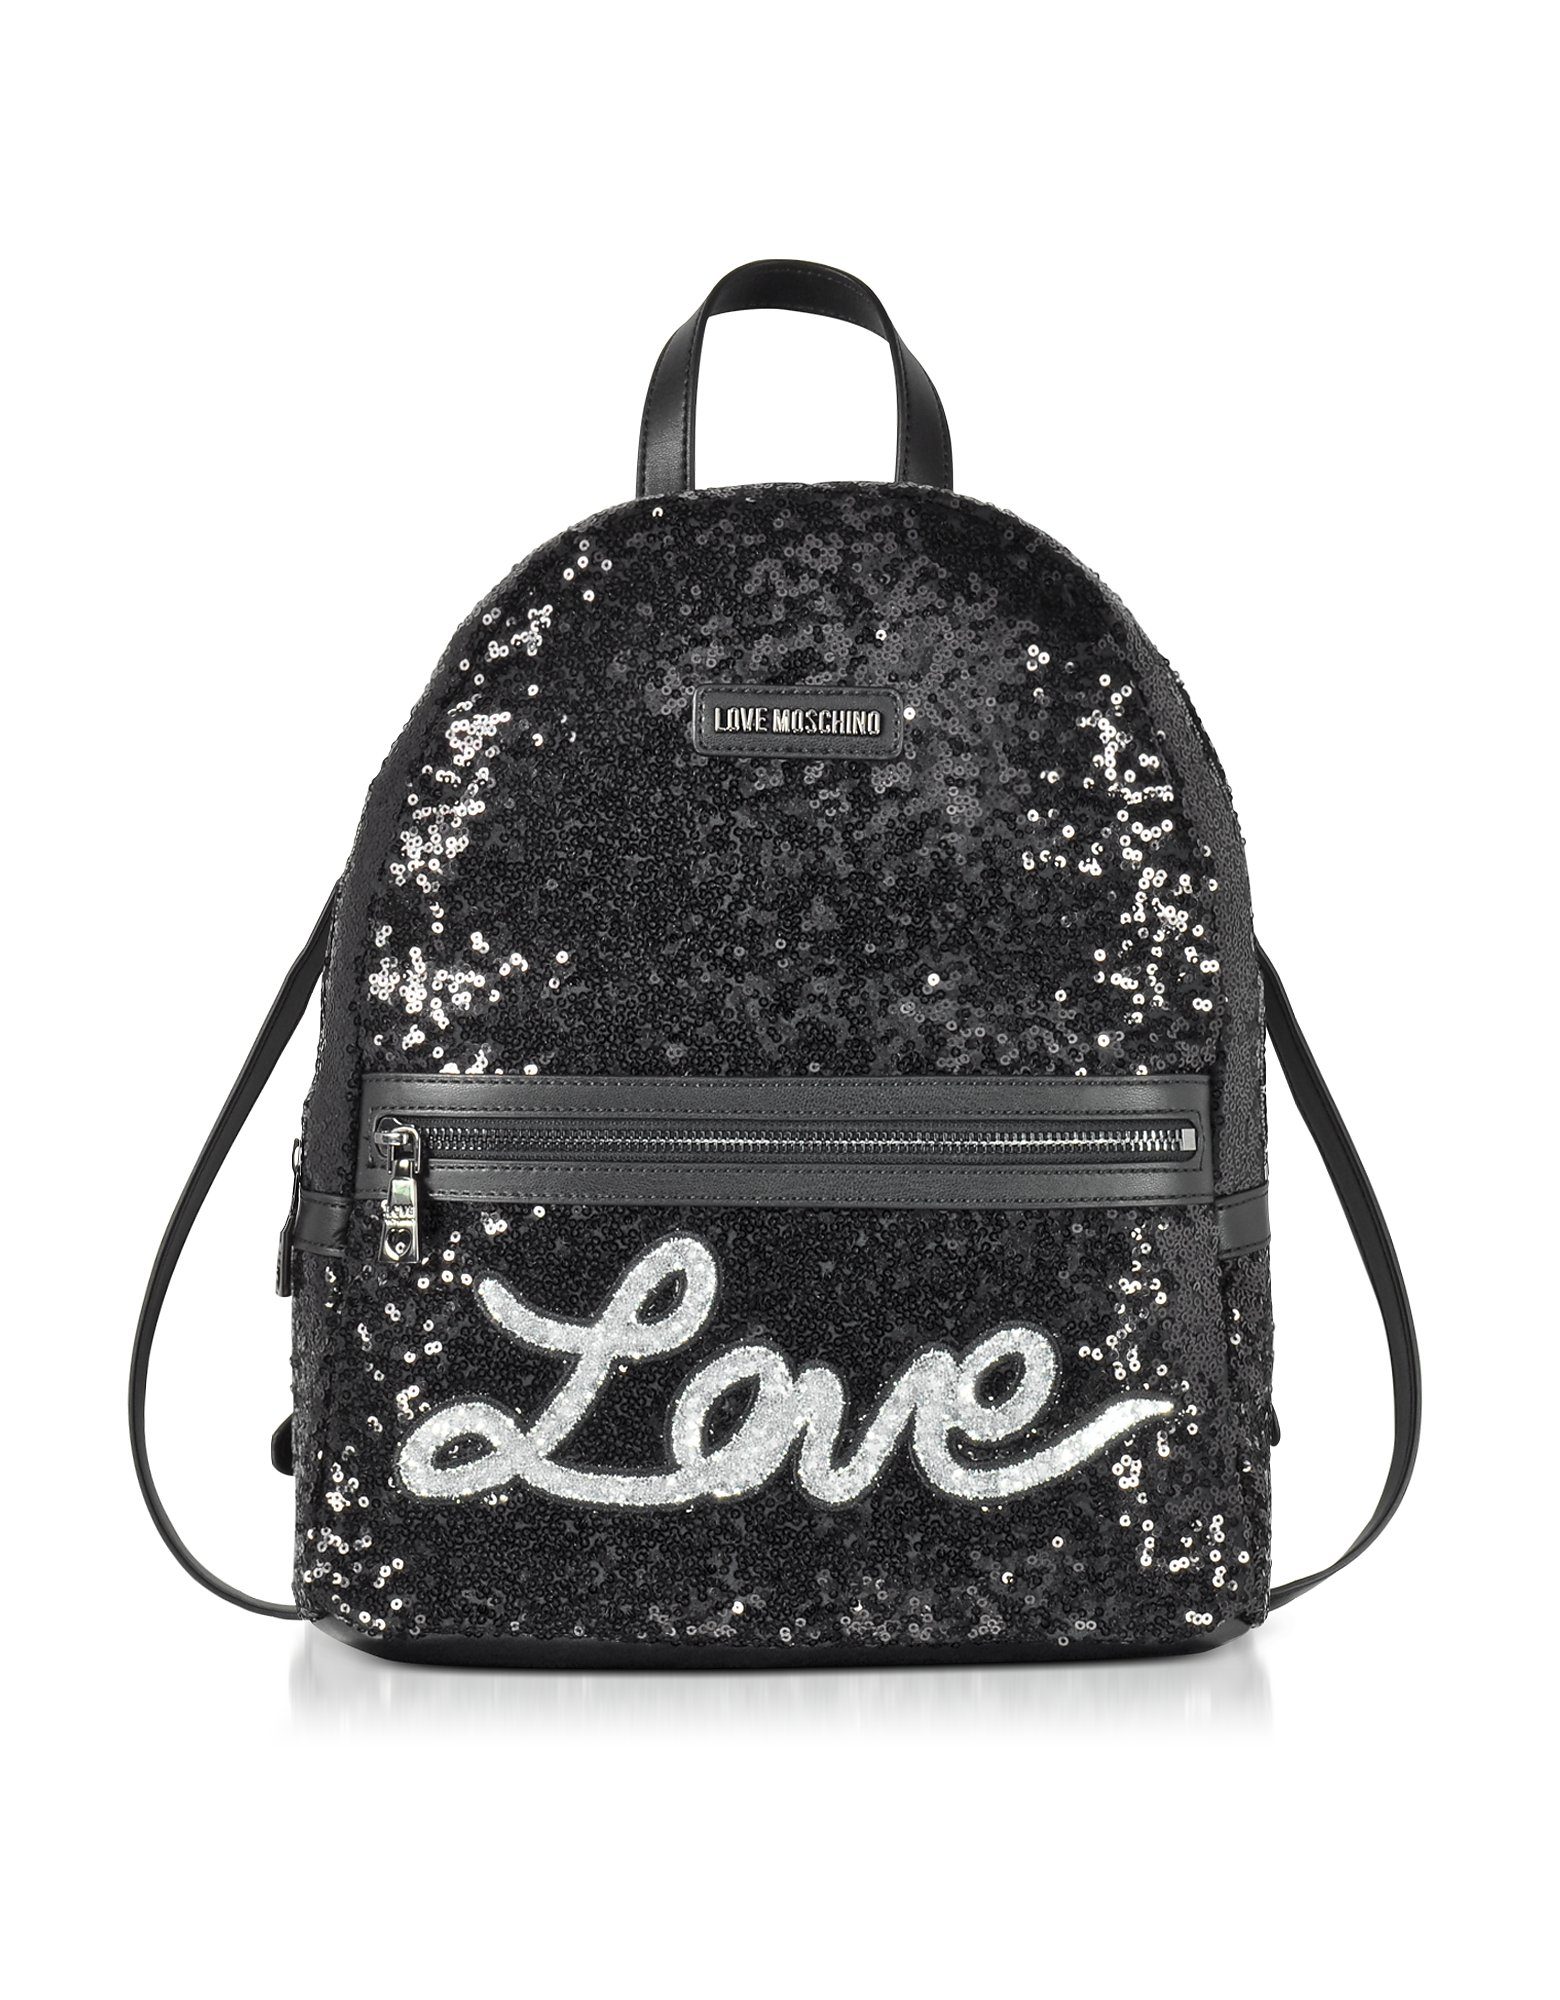 Love Moschino Women's Jc4102pp15lr0000 Black Leather Backpack